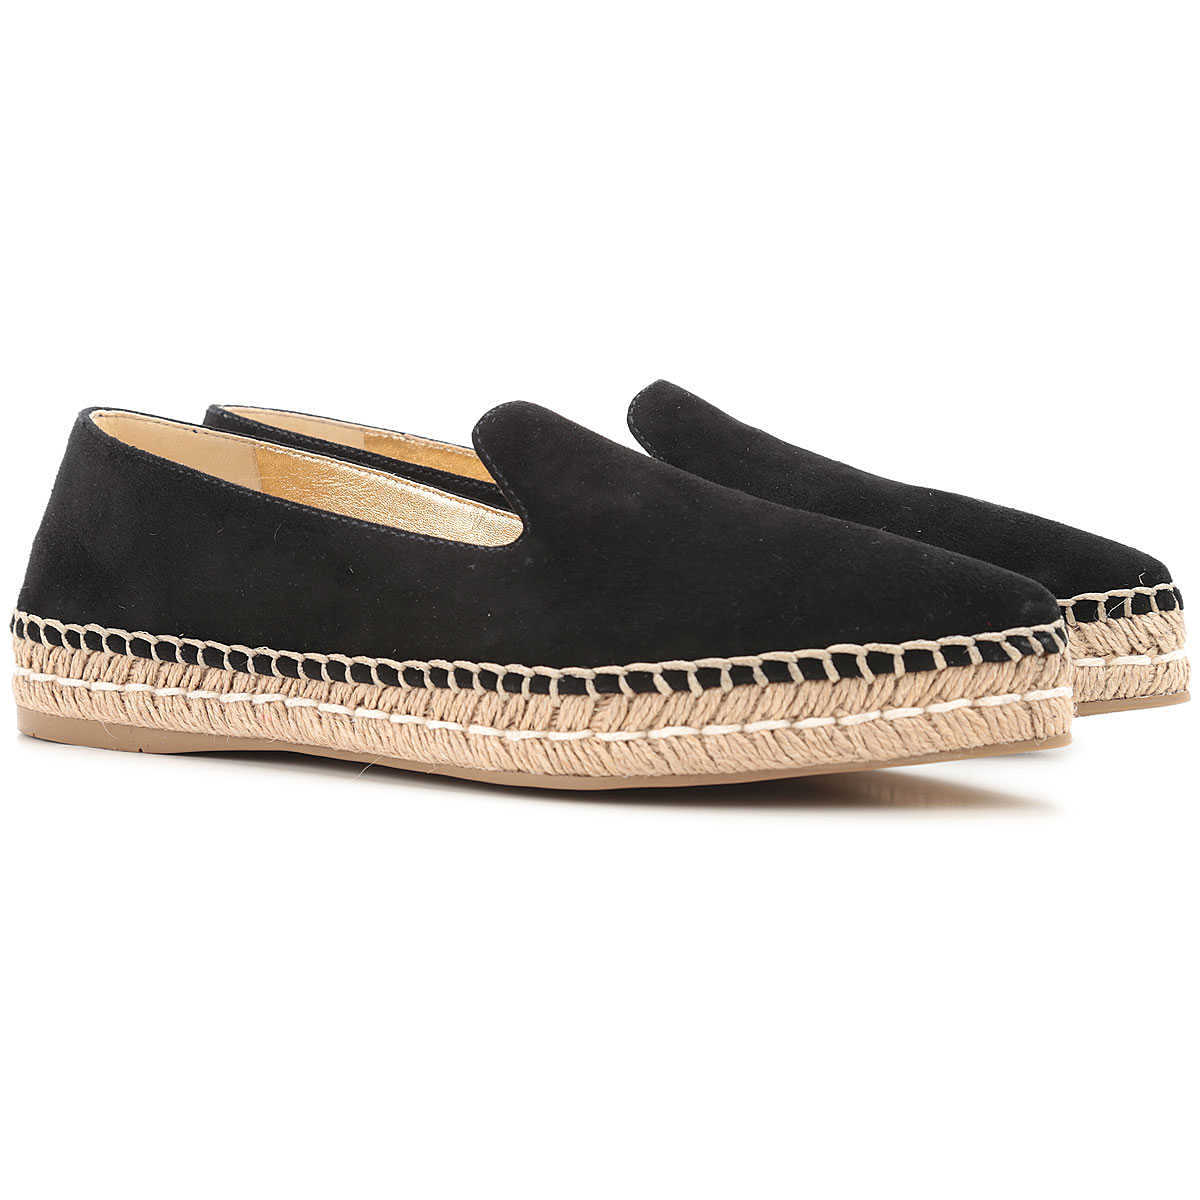 Prada Loafers for Women On Sale in Outlet Black DK - GOOFASH - Womens FLAT SHOES